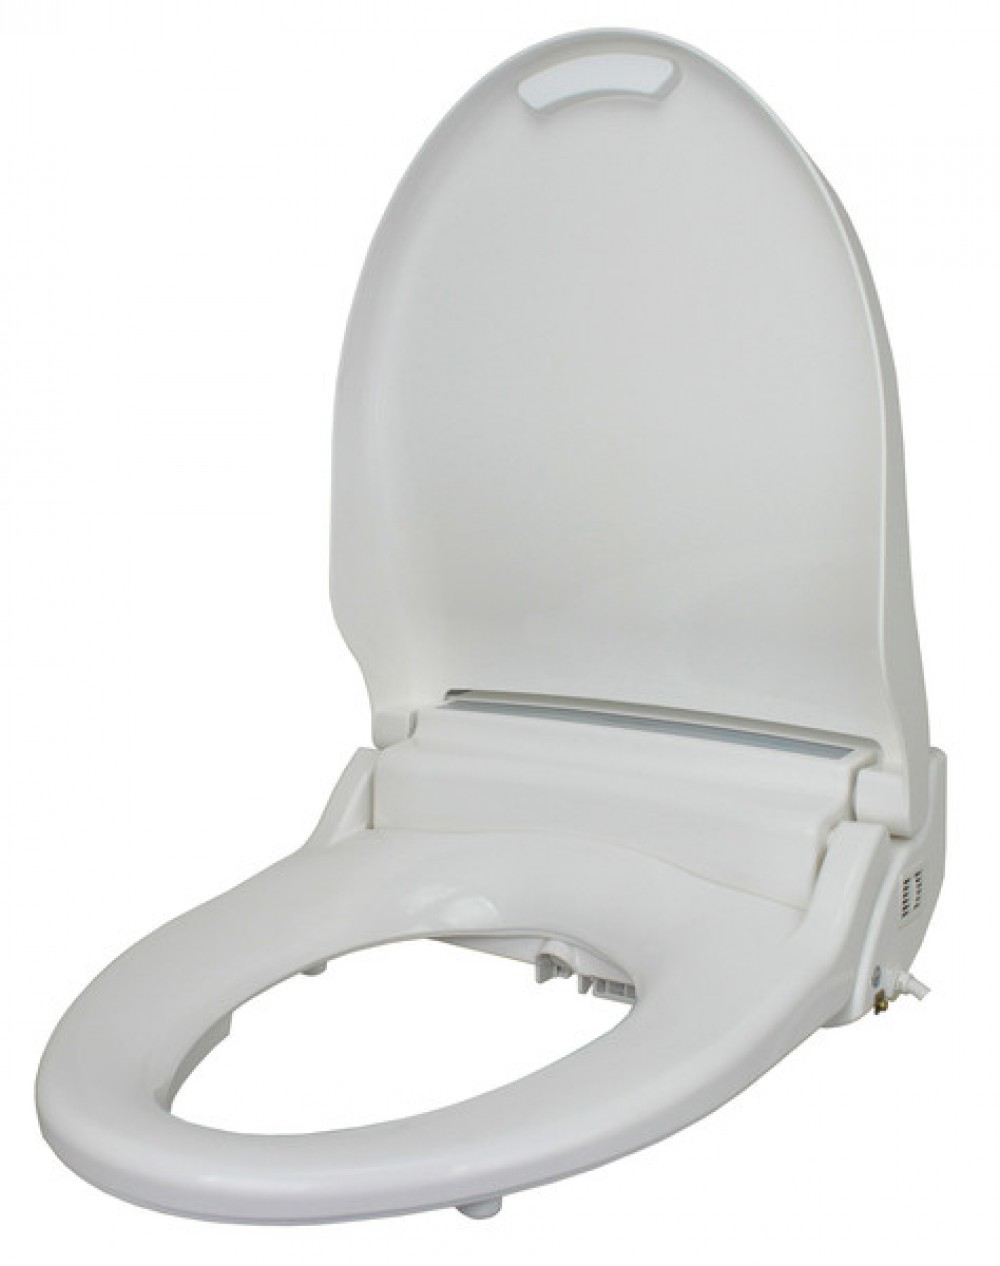 japanese toilet electric bidet dib daewon w1500r